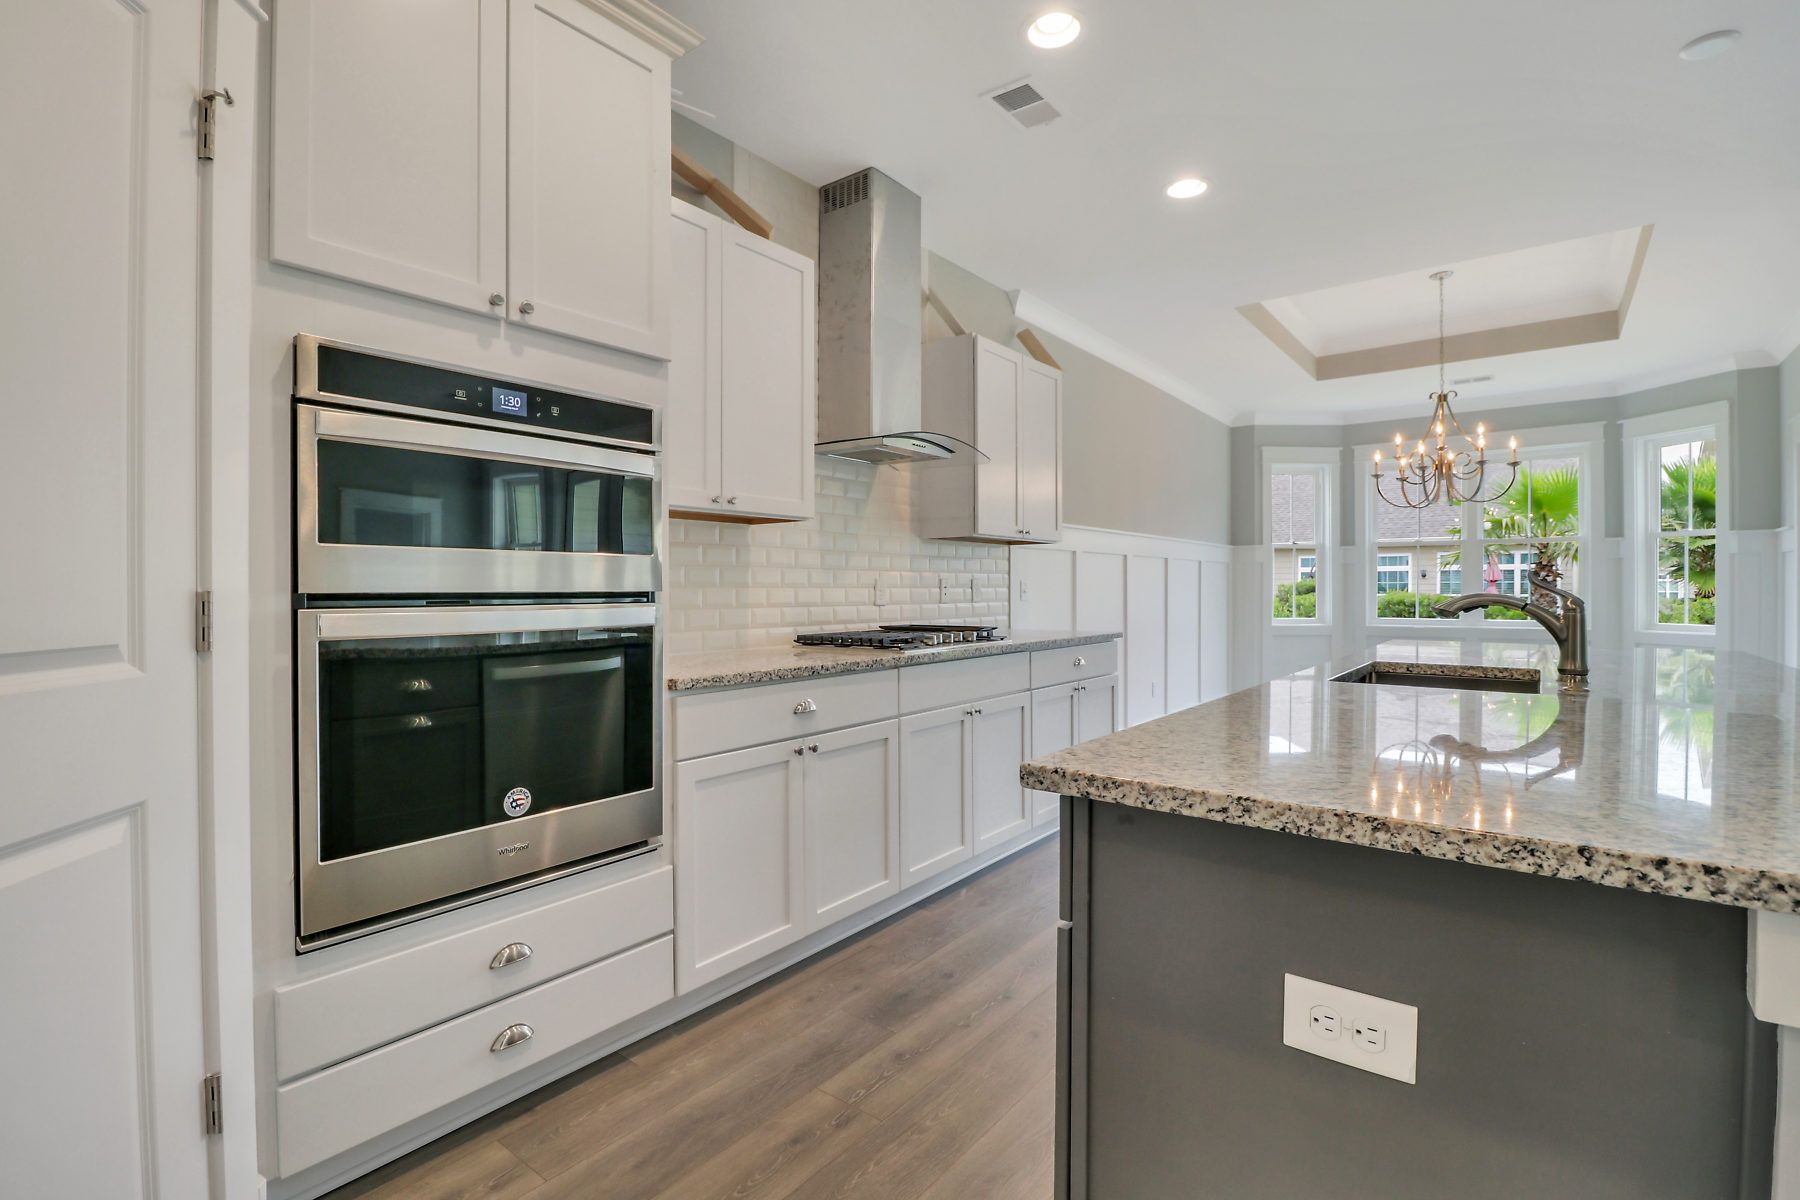 Kitchen featured in The Brookwood By Village Park Homes in Hilton Head, SC